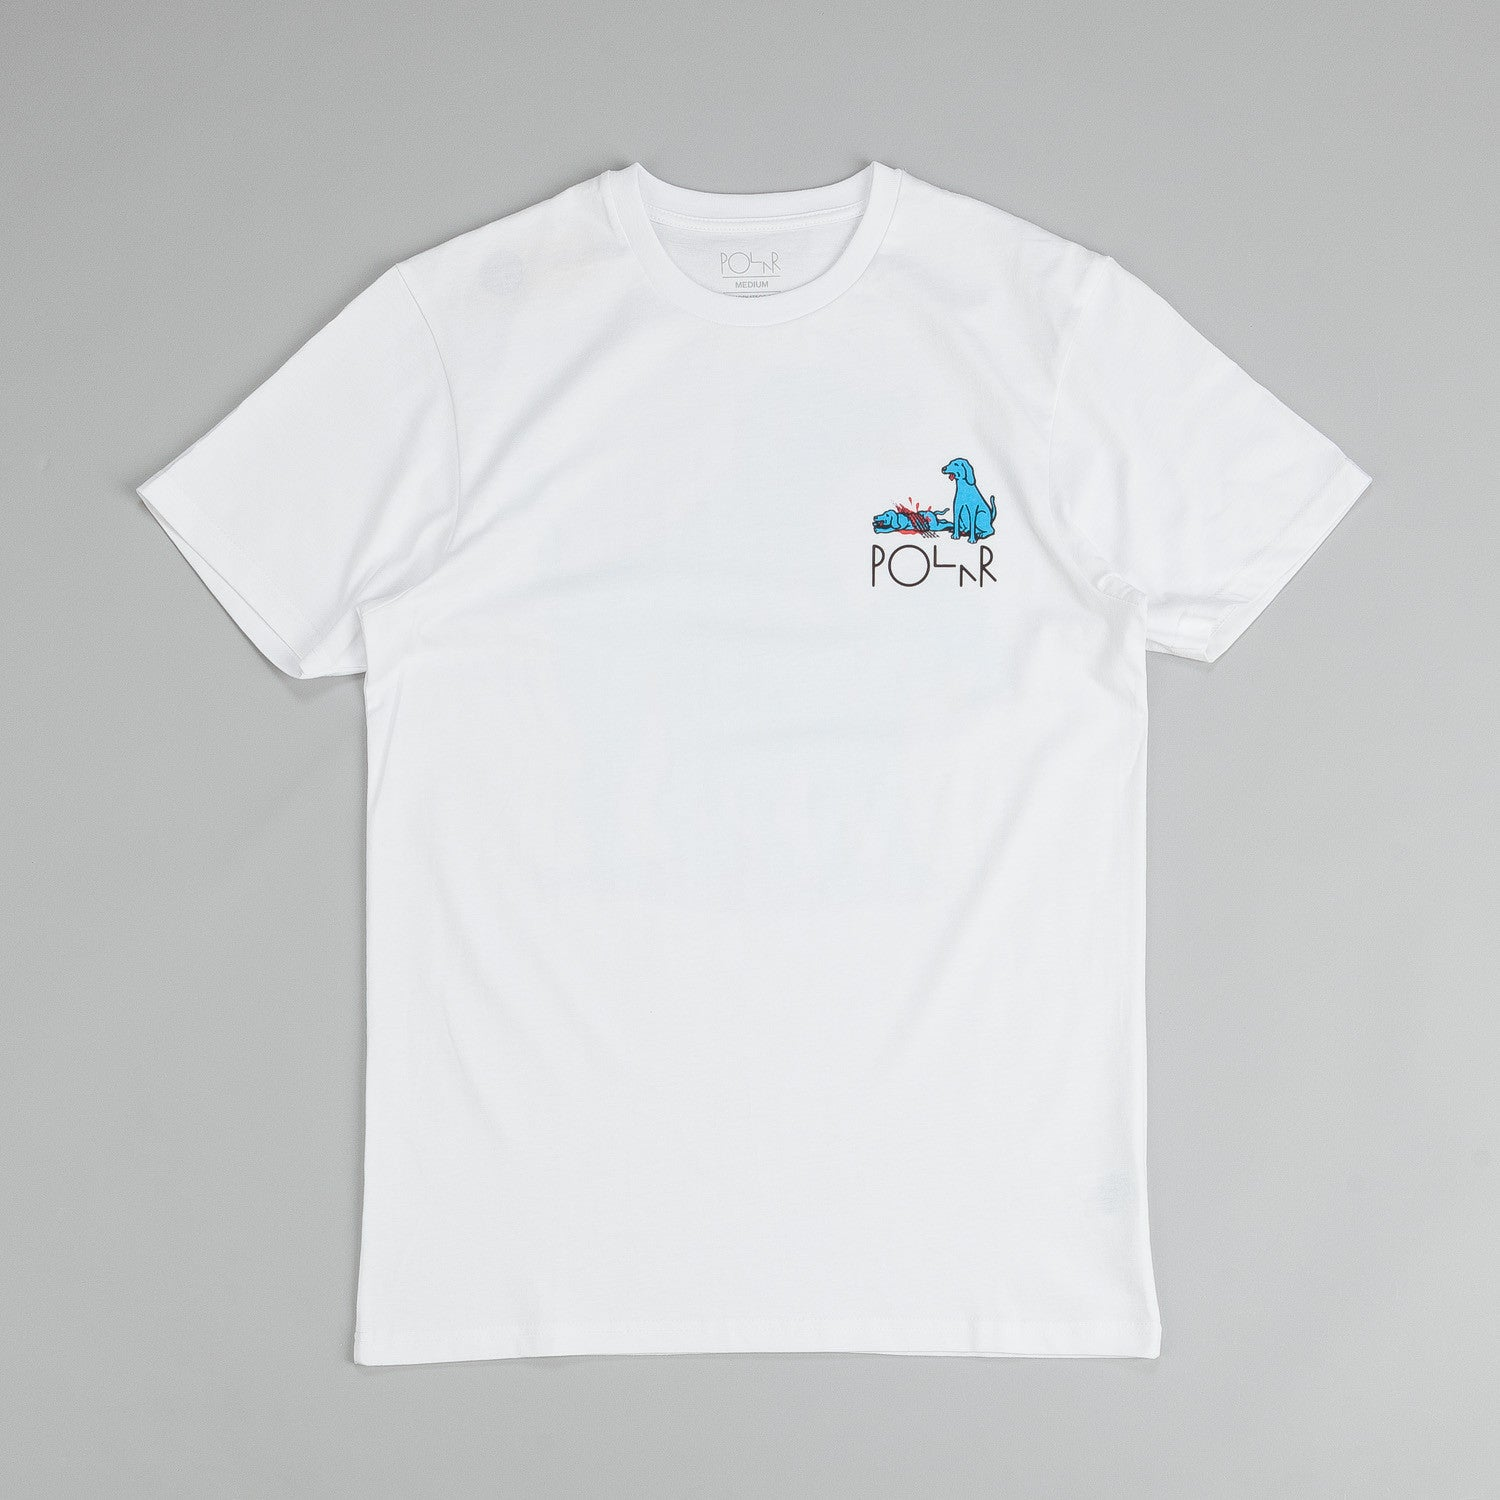 Polar Humping Dogs T Shirt White / Blue